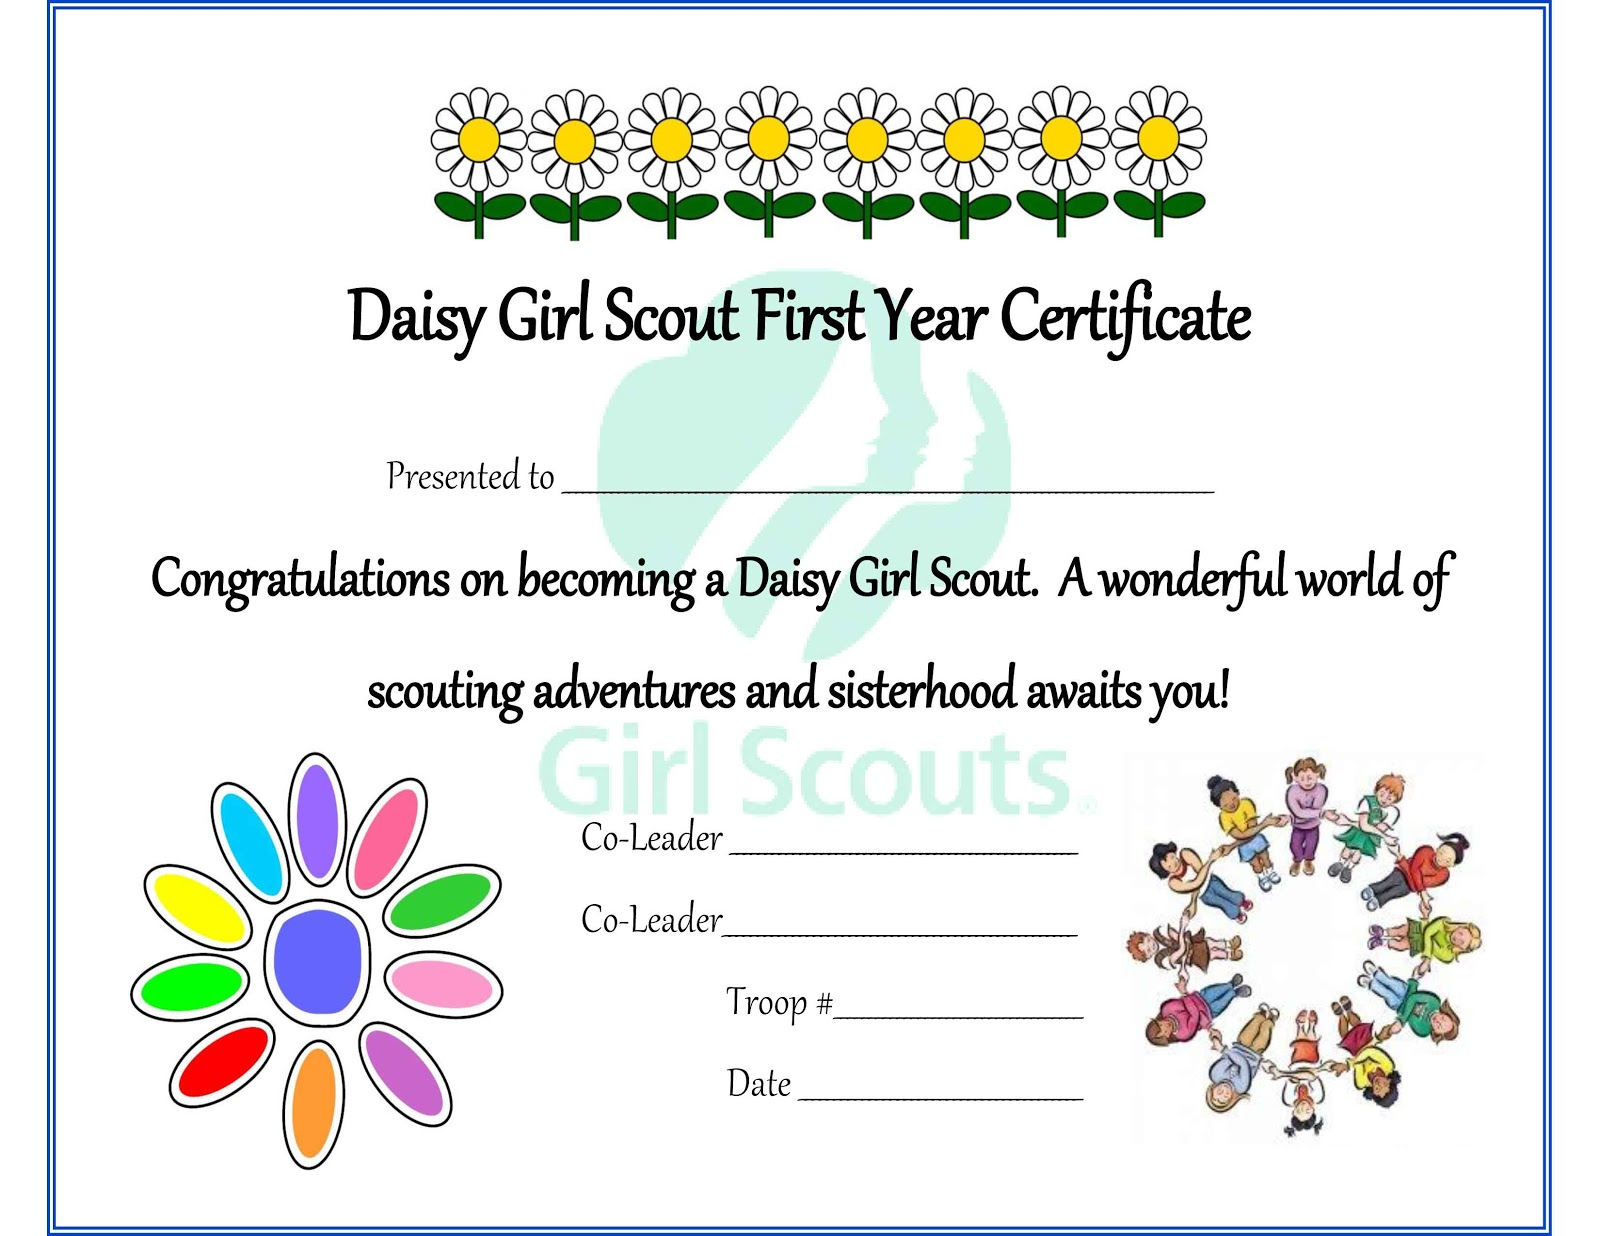 Girl scout daisy investiture certificate free printable for Girl scout calendar template